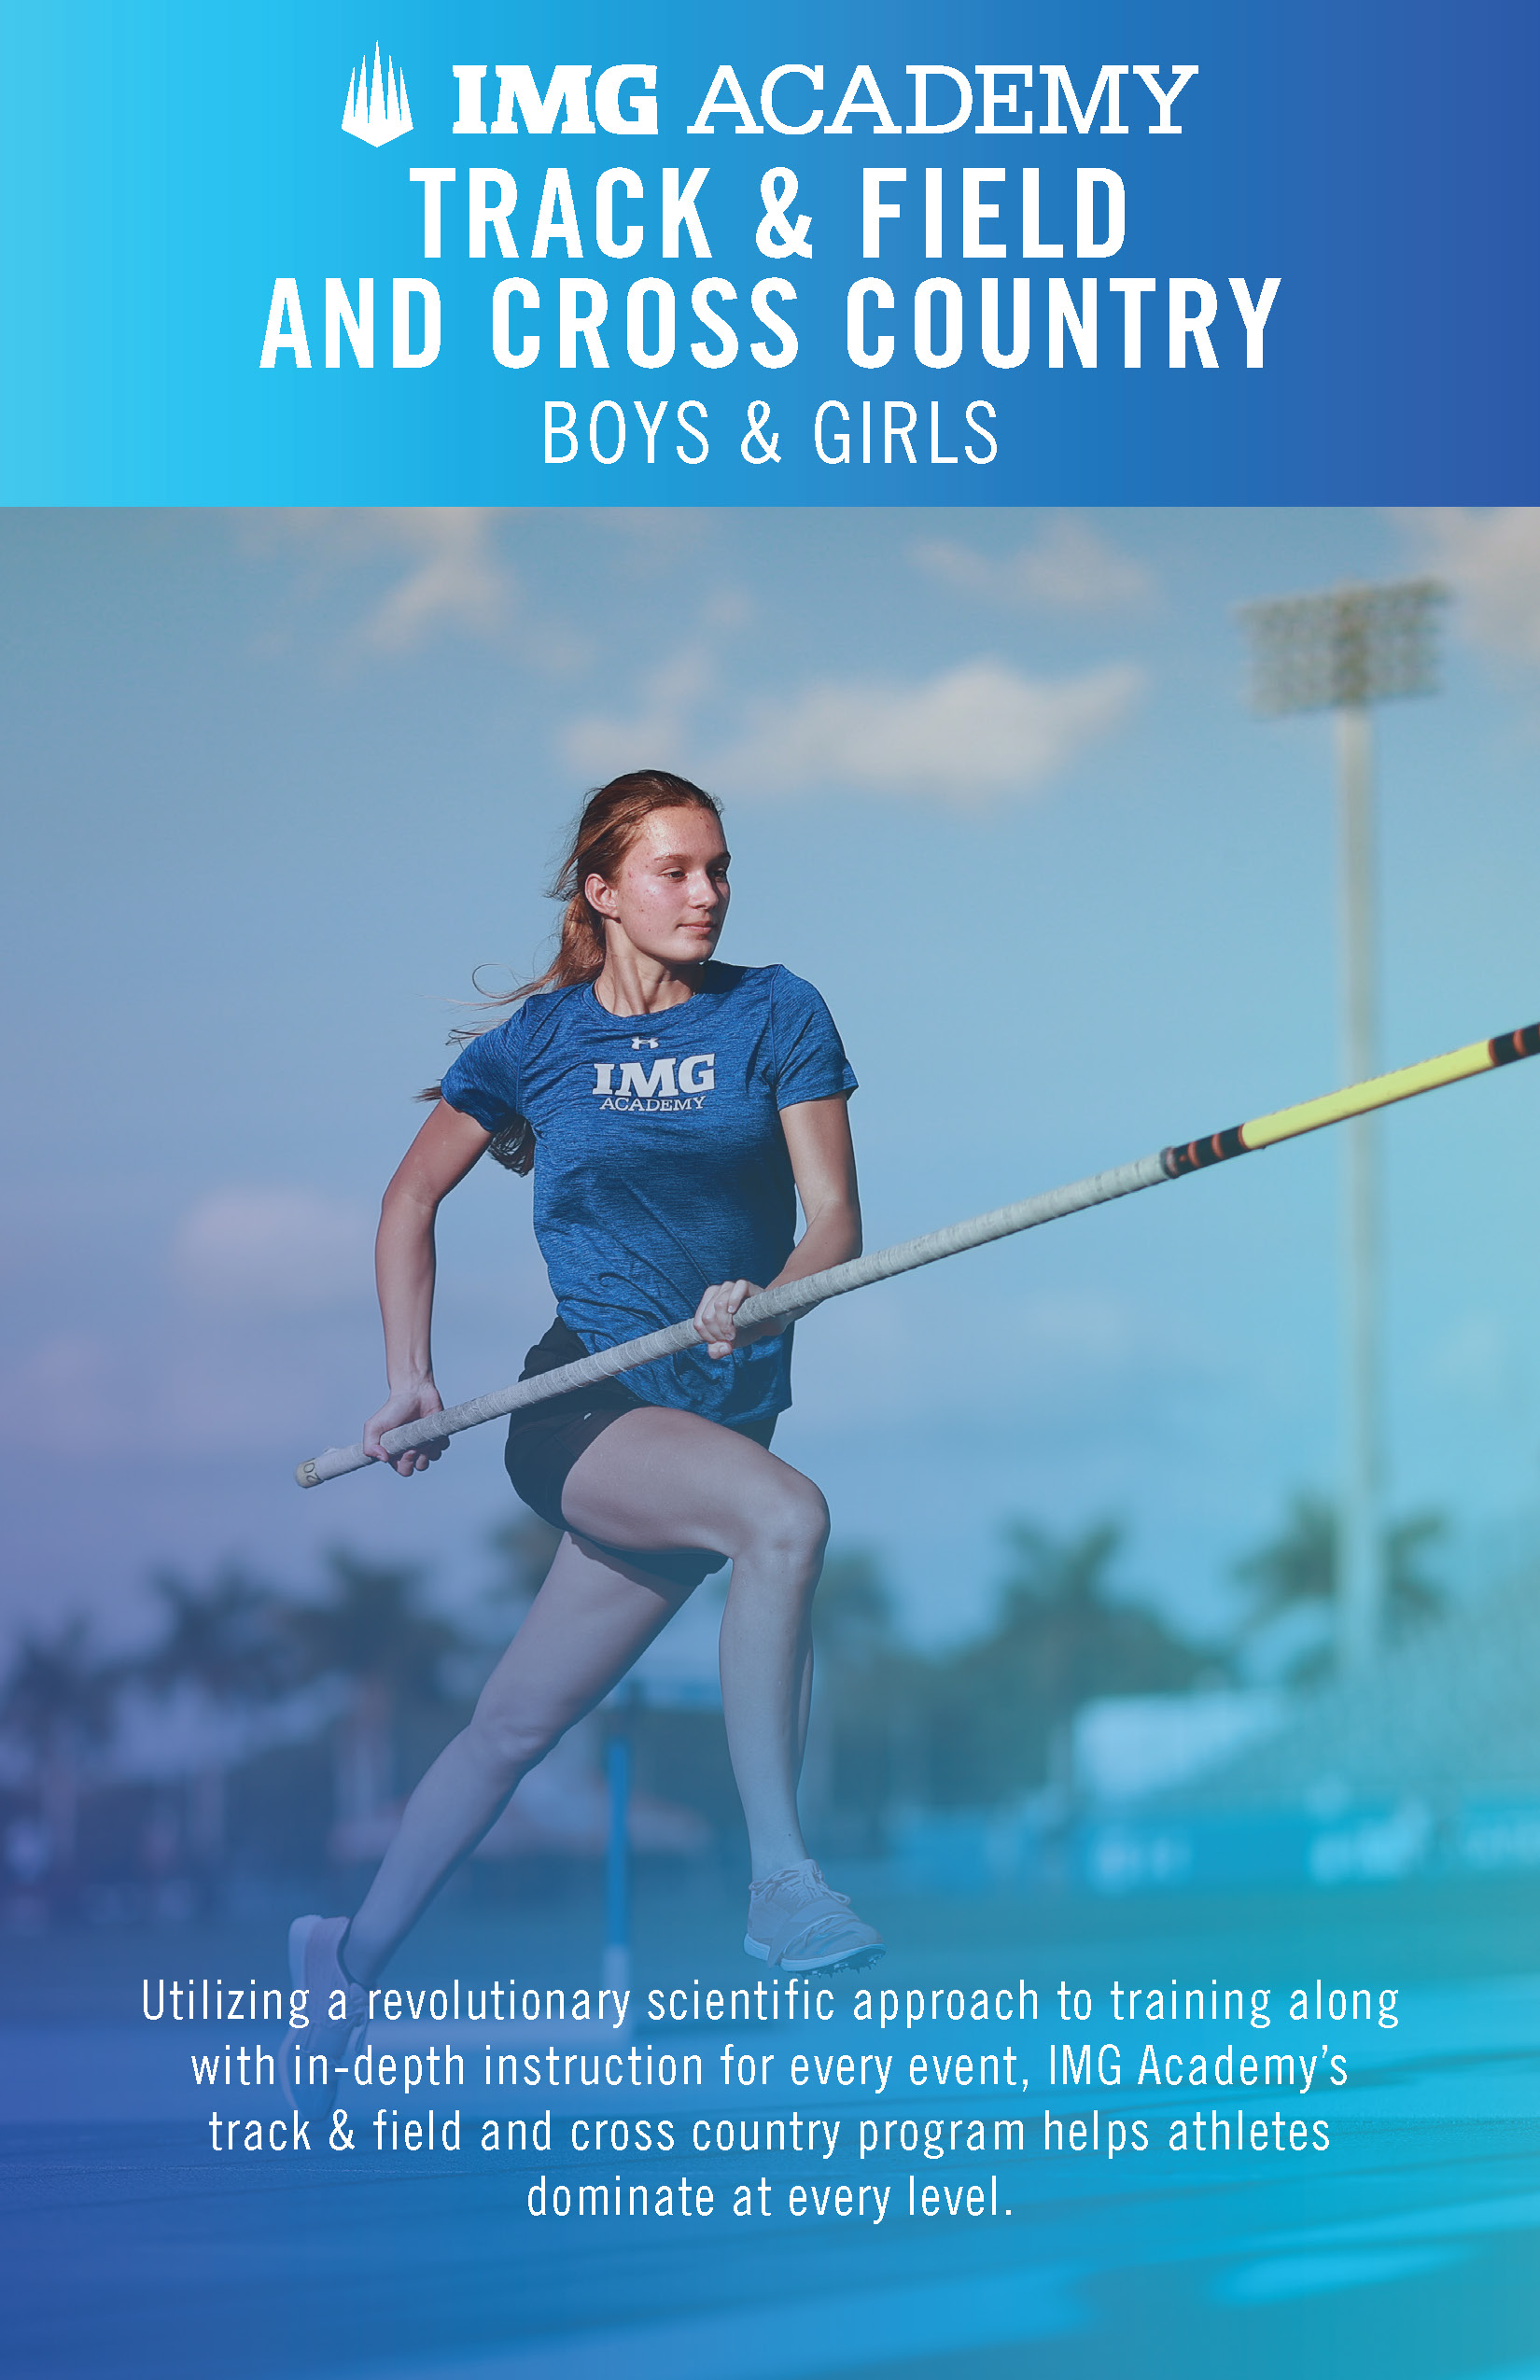 IMG Academy Track & Field and Cross Country Program